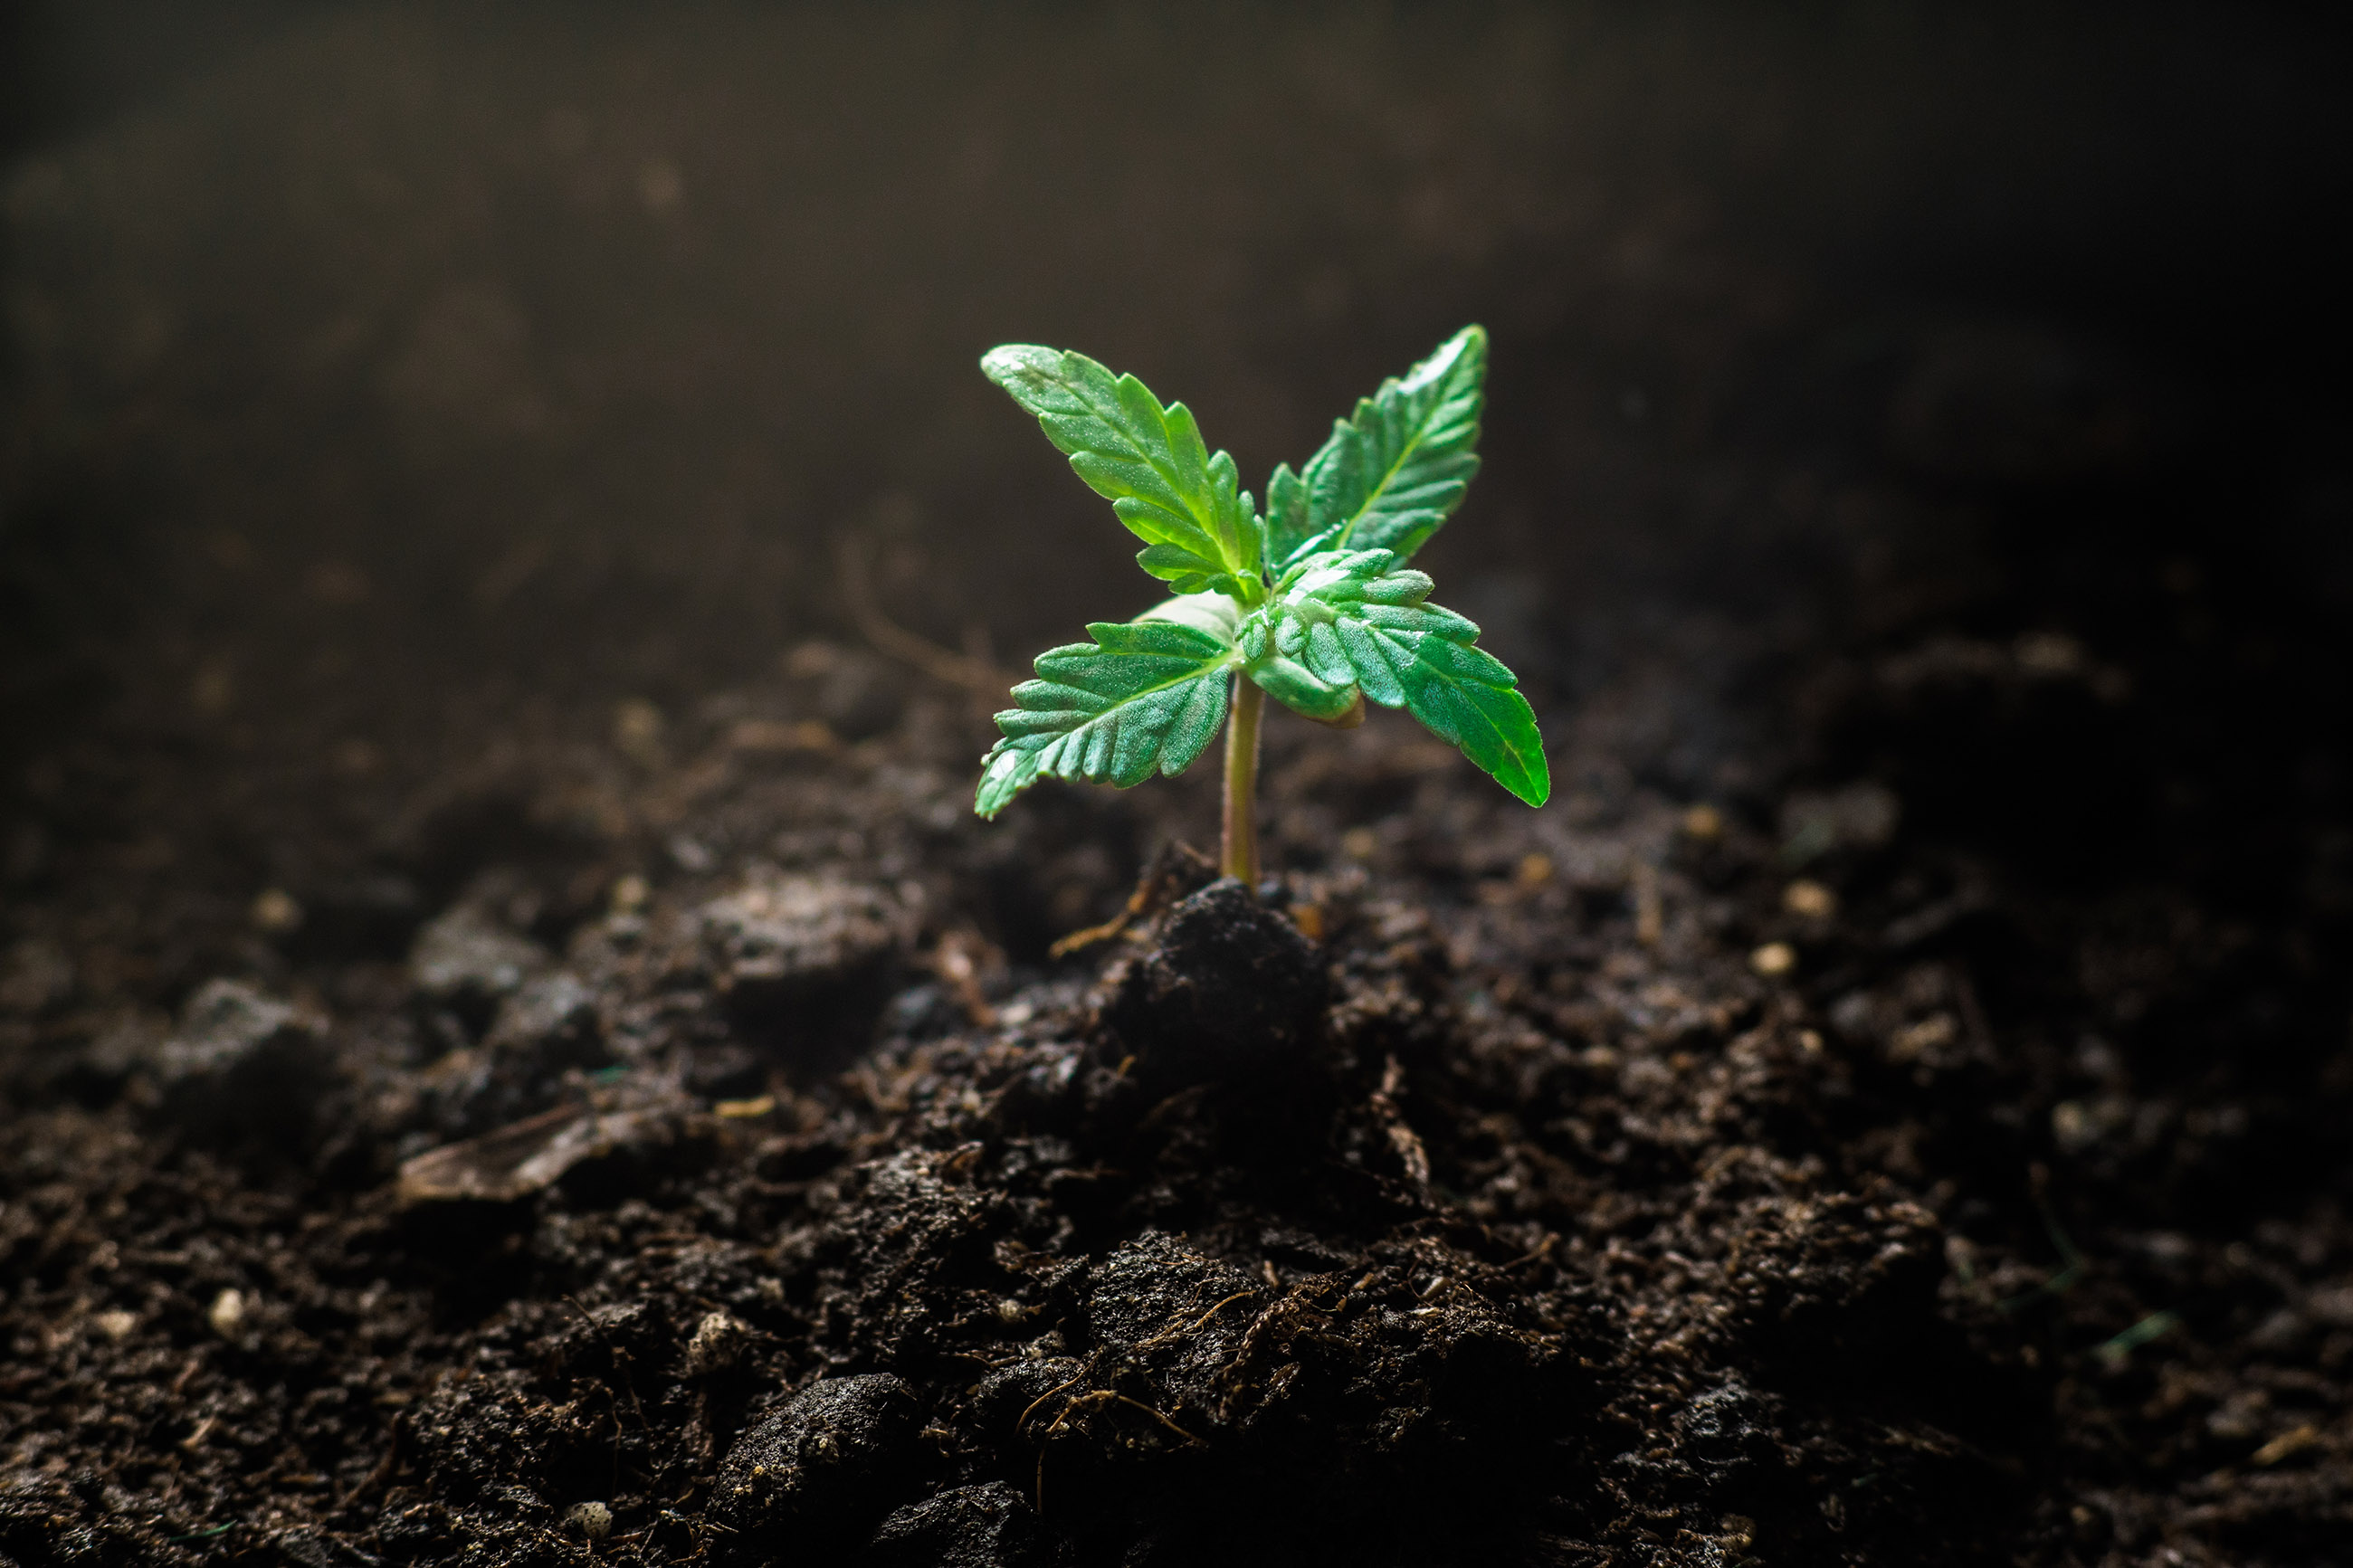 The Life cycle of Cannabis: From seed to harvest